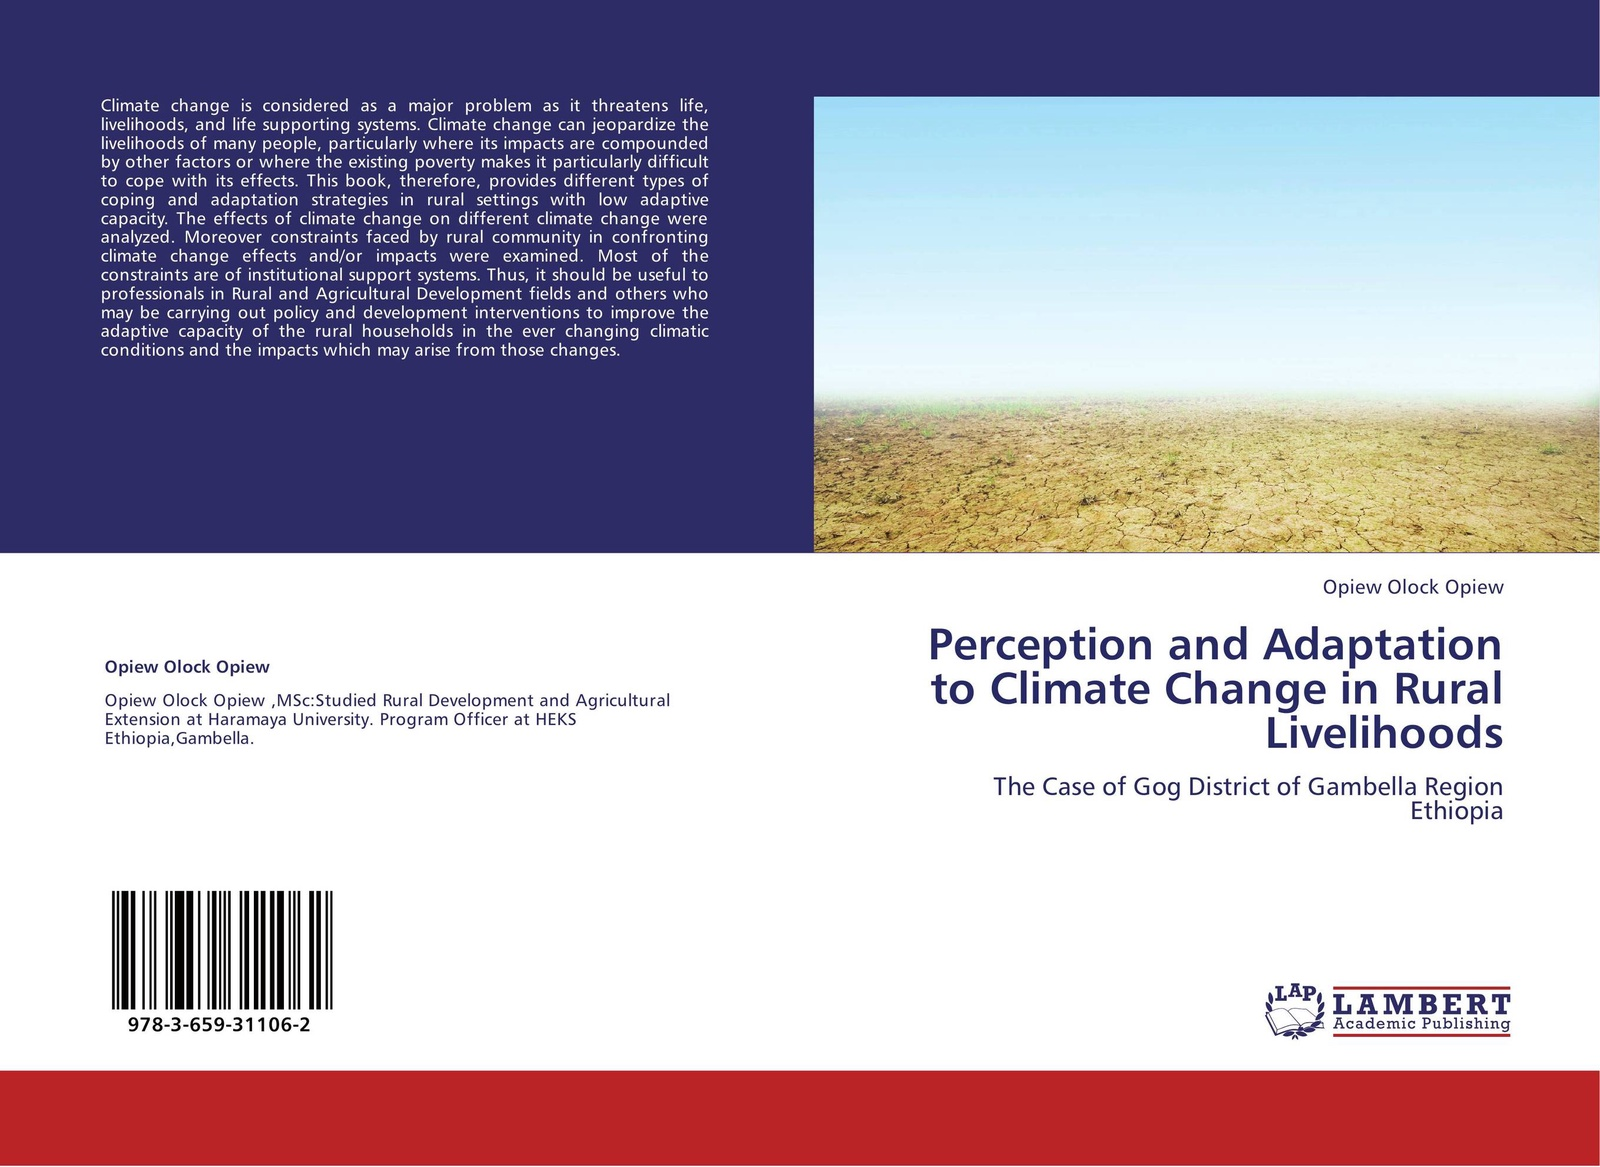 Opiew Olock Opiew Perception and Adaptation to Climate Change in Rural Livelihoods impacts of climate change on groundwater